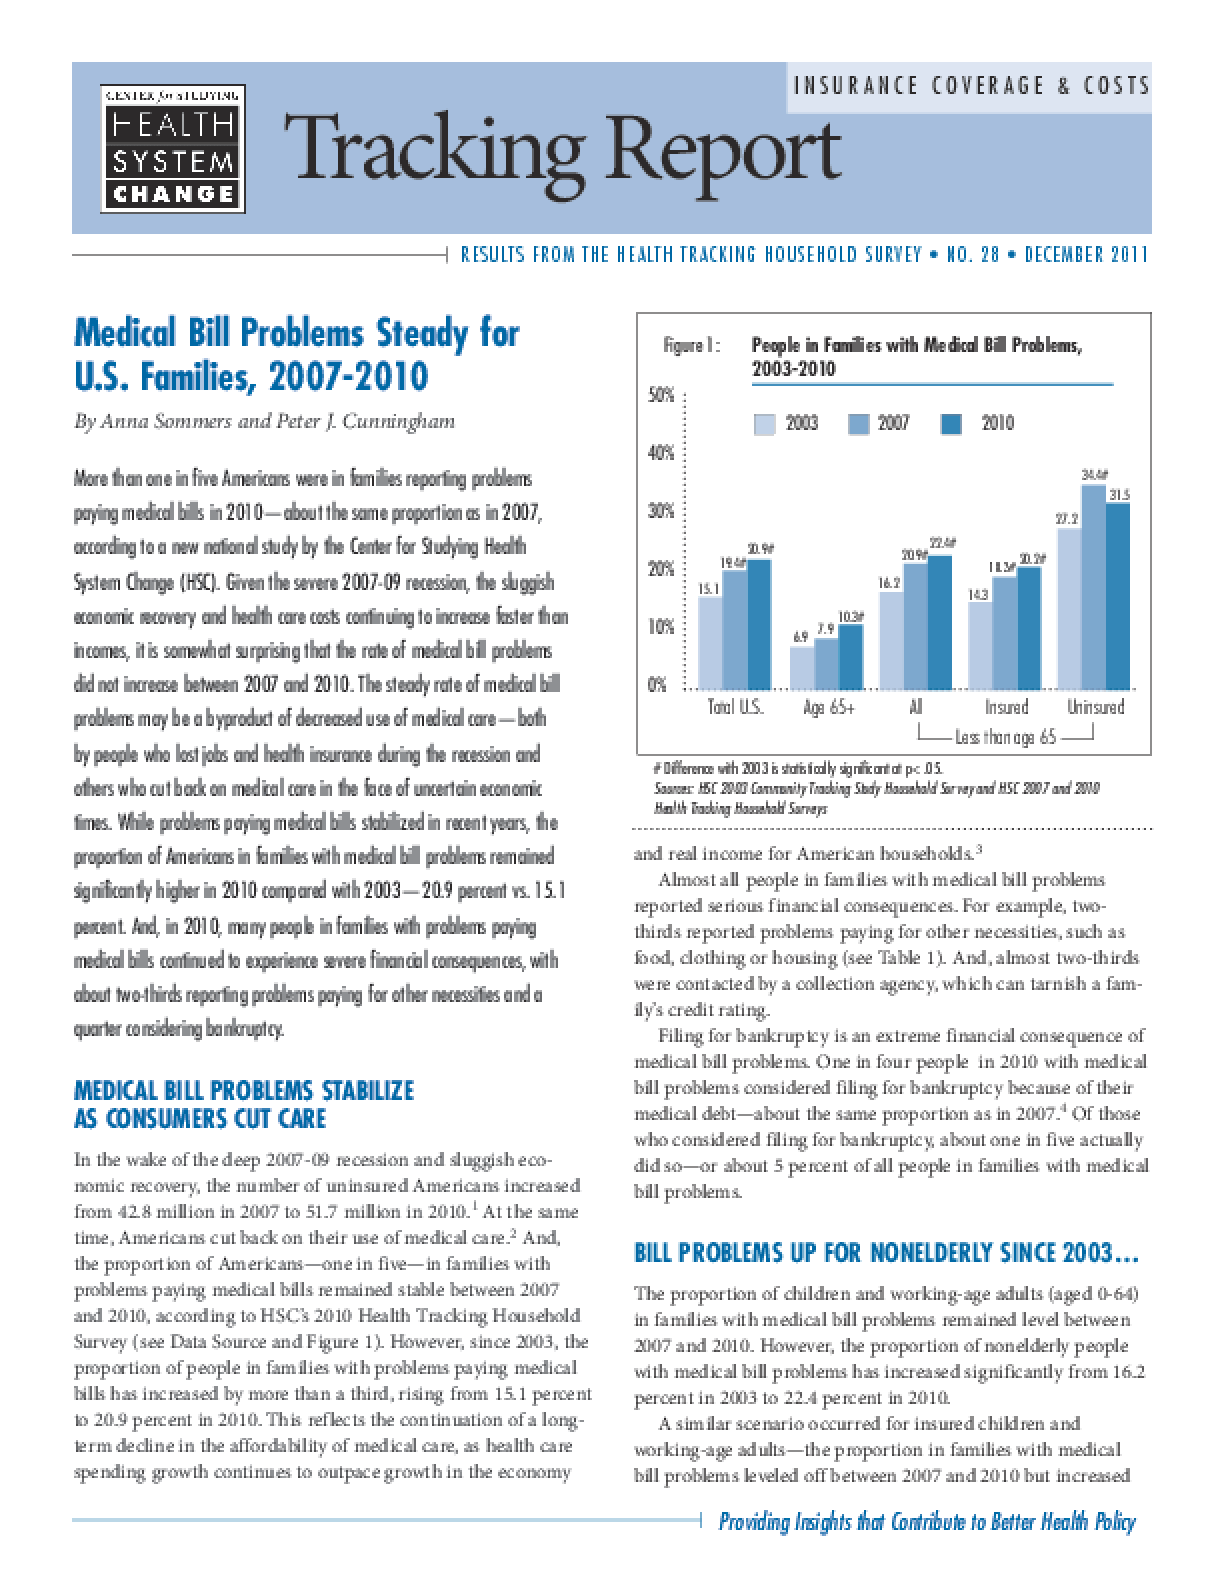 Medical Bill Problems Steady for U.S. Families, 2007-2010